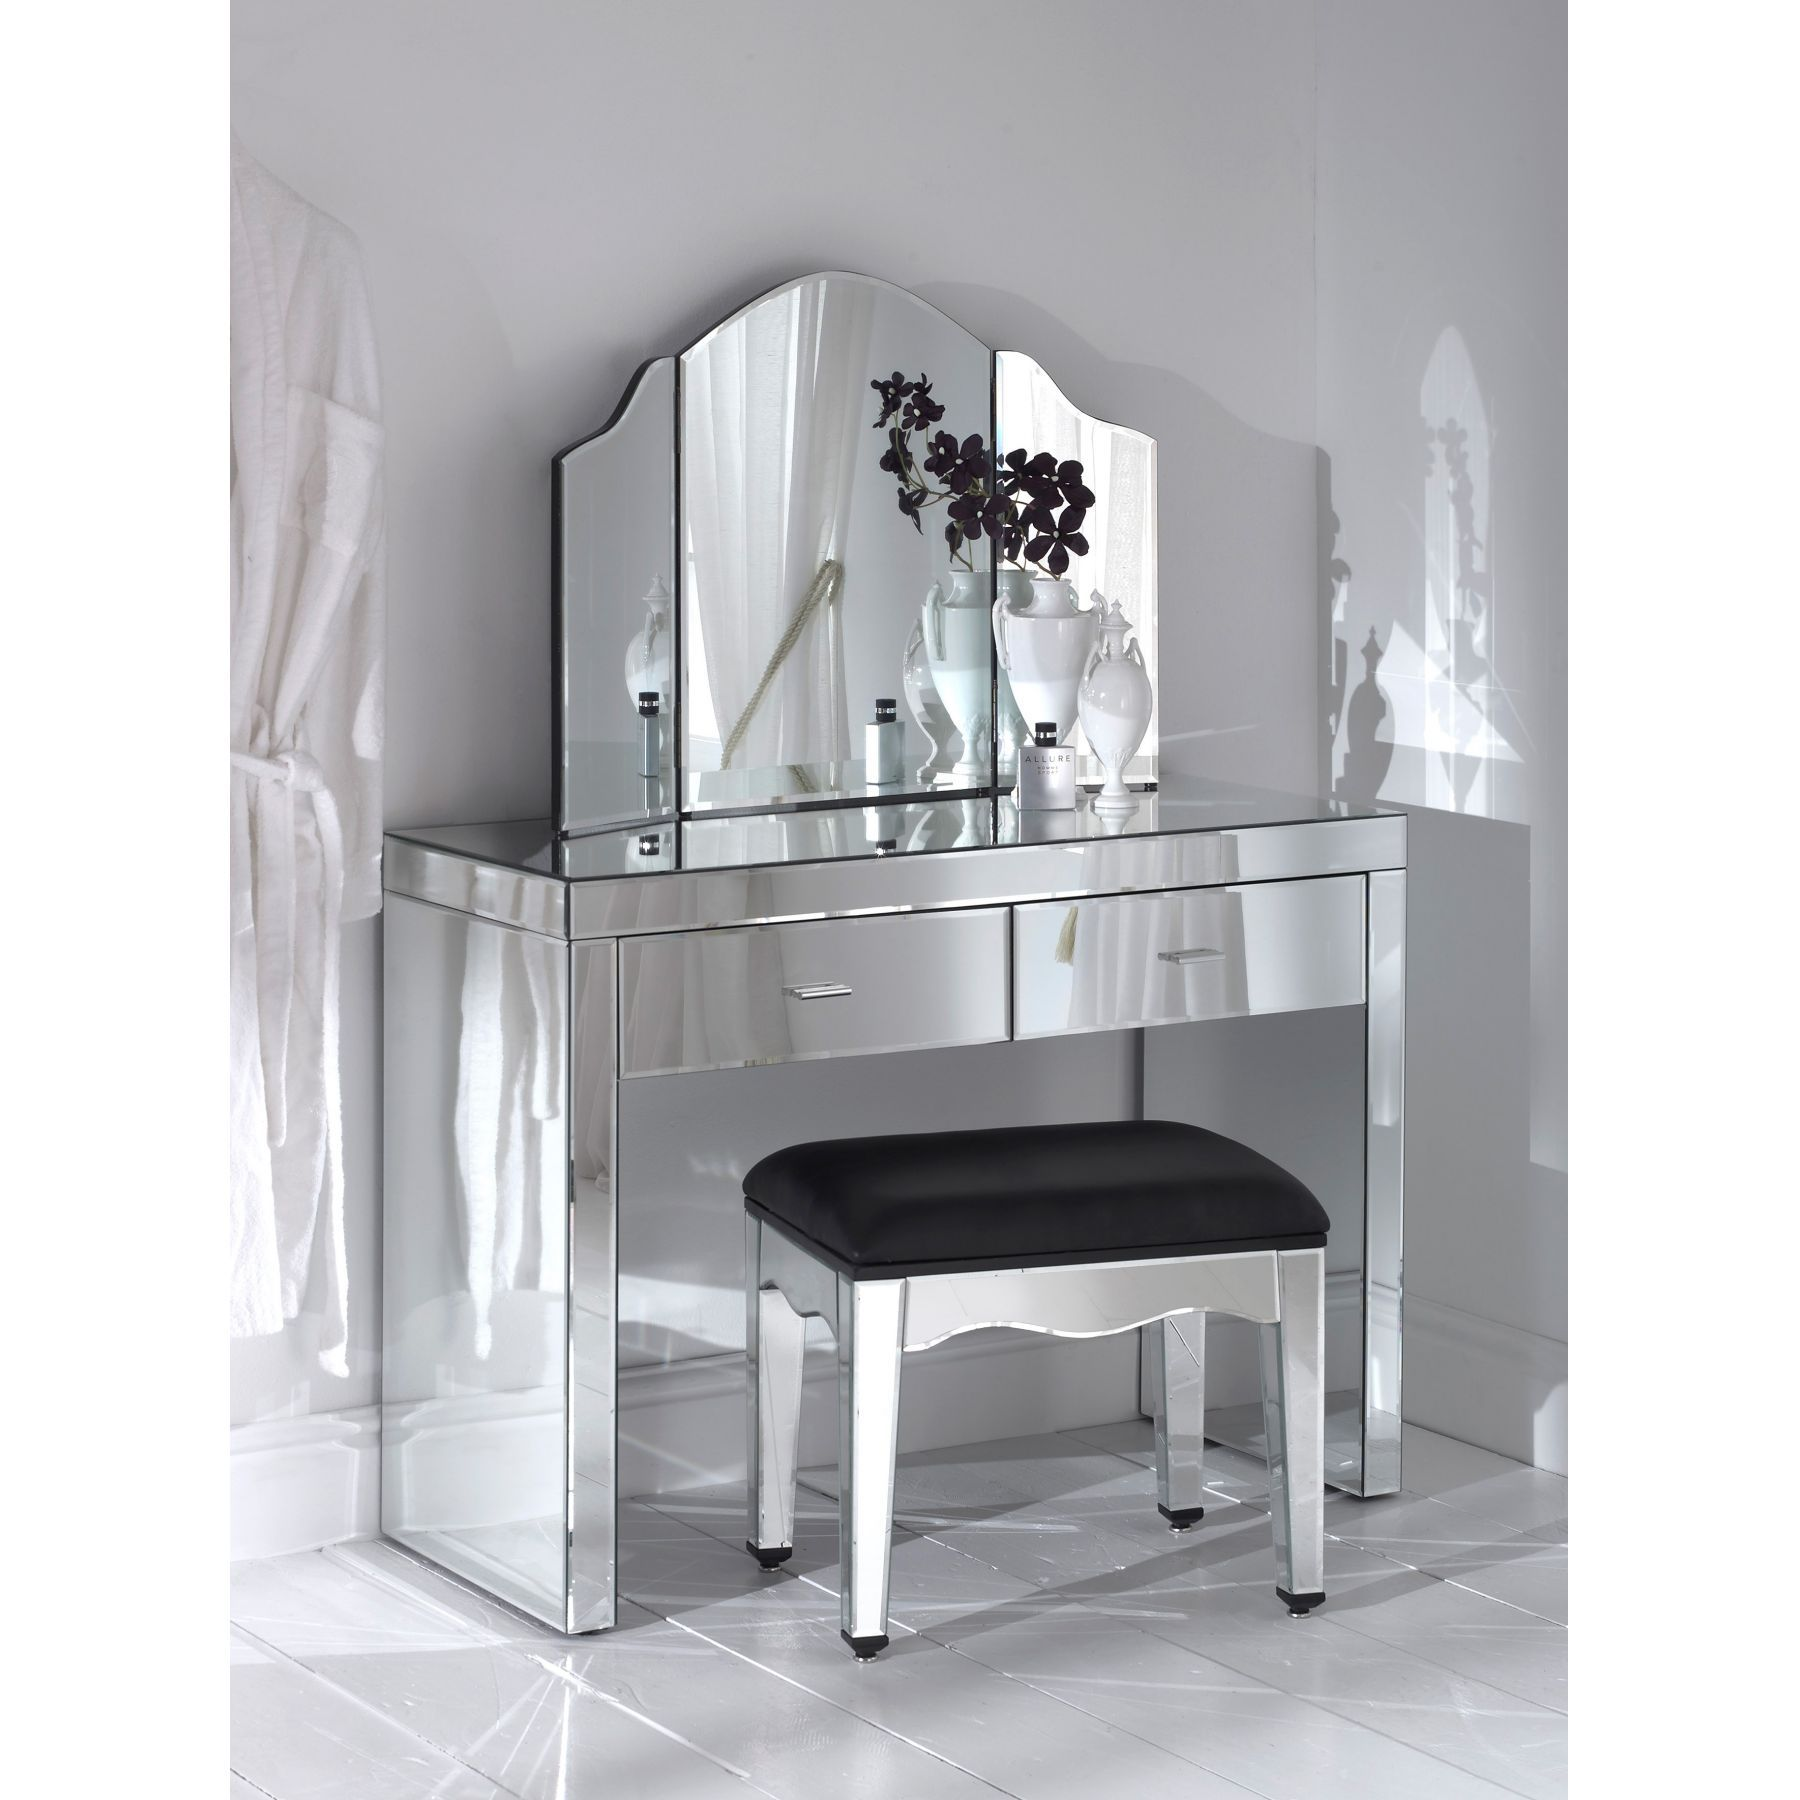 Modern dressing table with mirror - Mirror Fascinating Dressing Table Come With